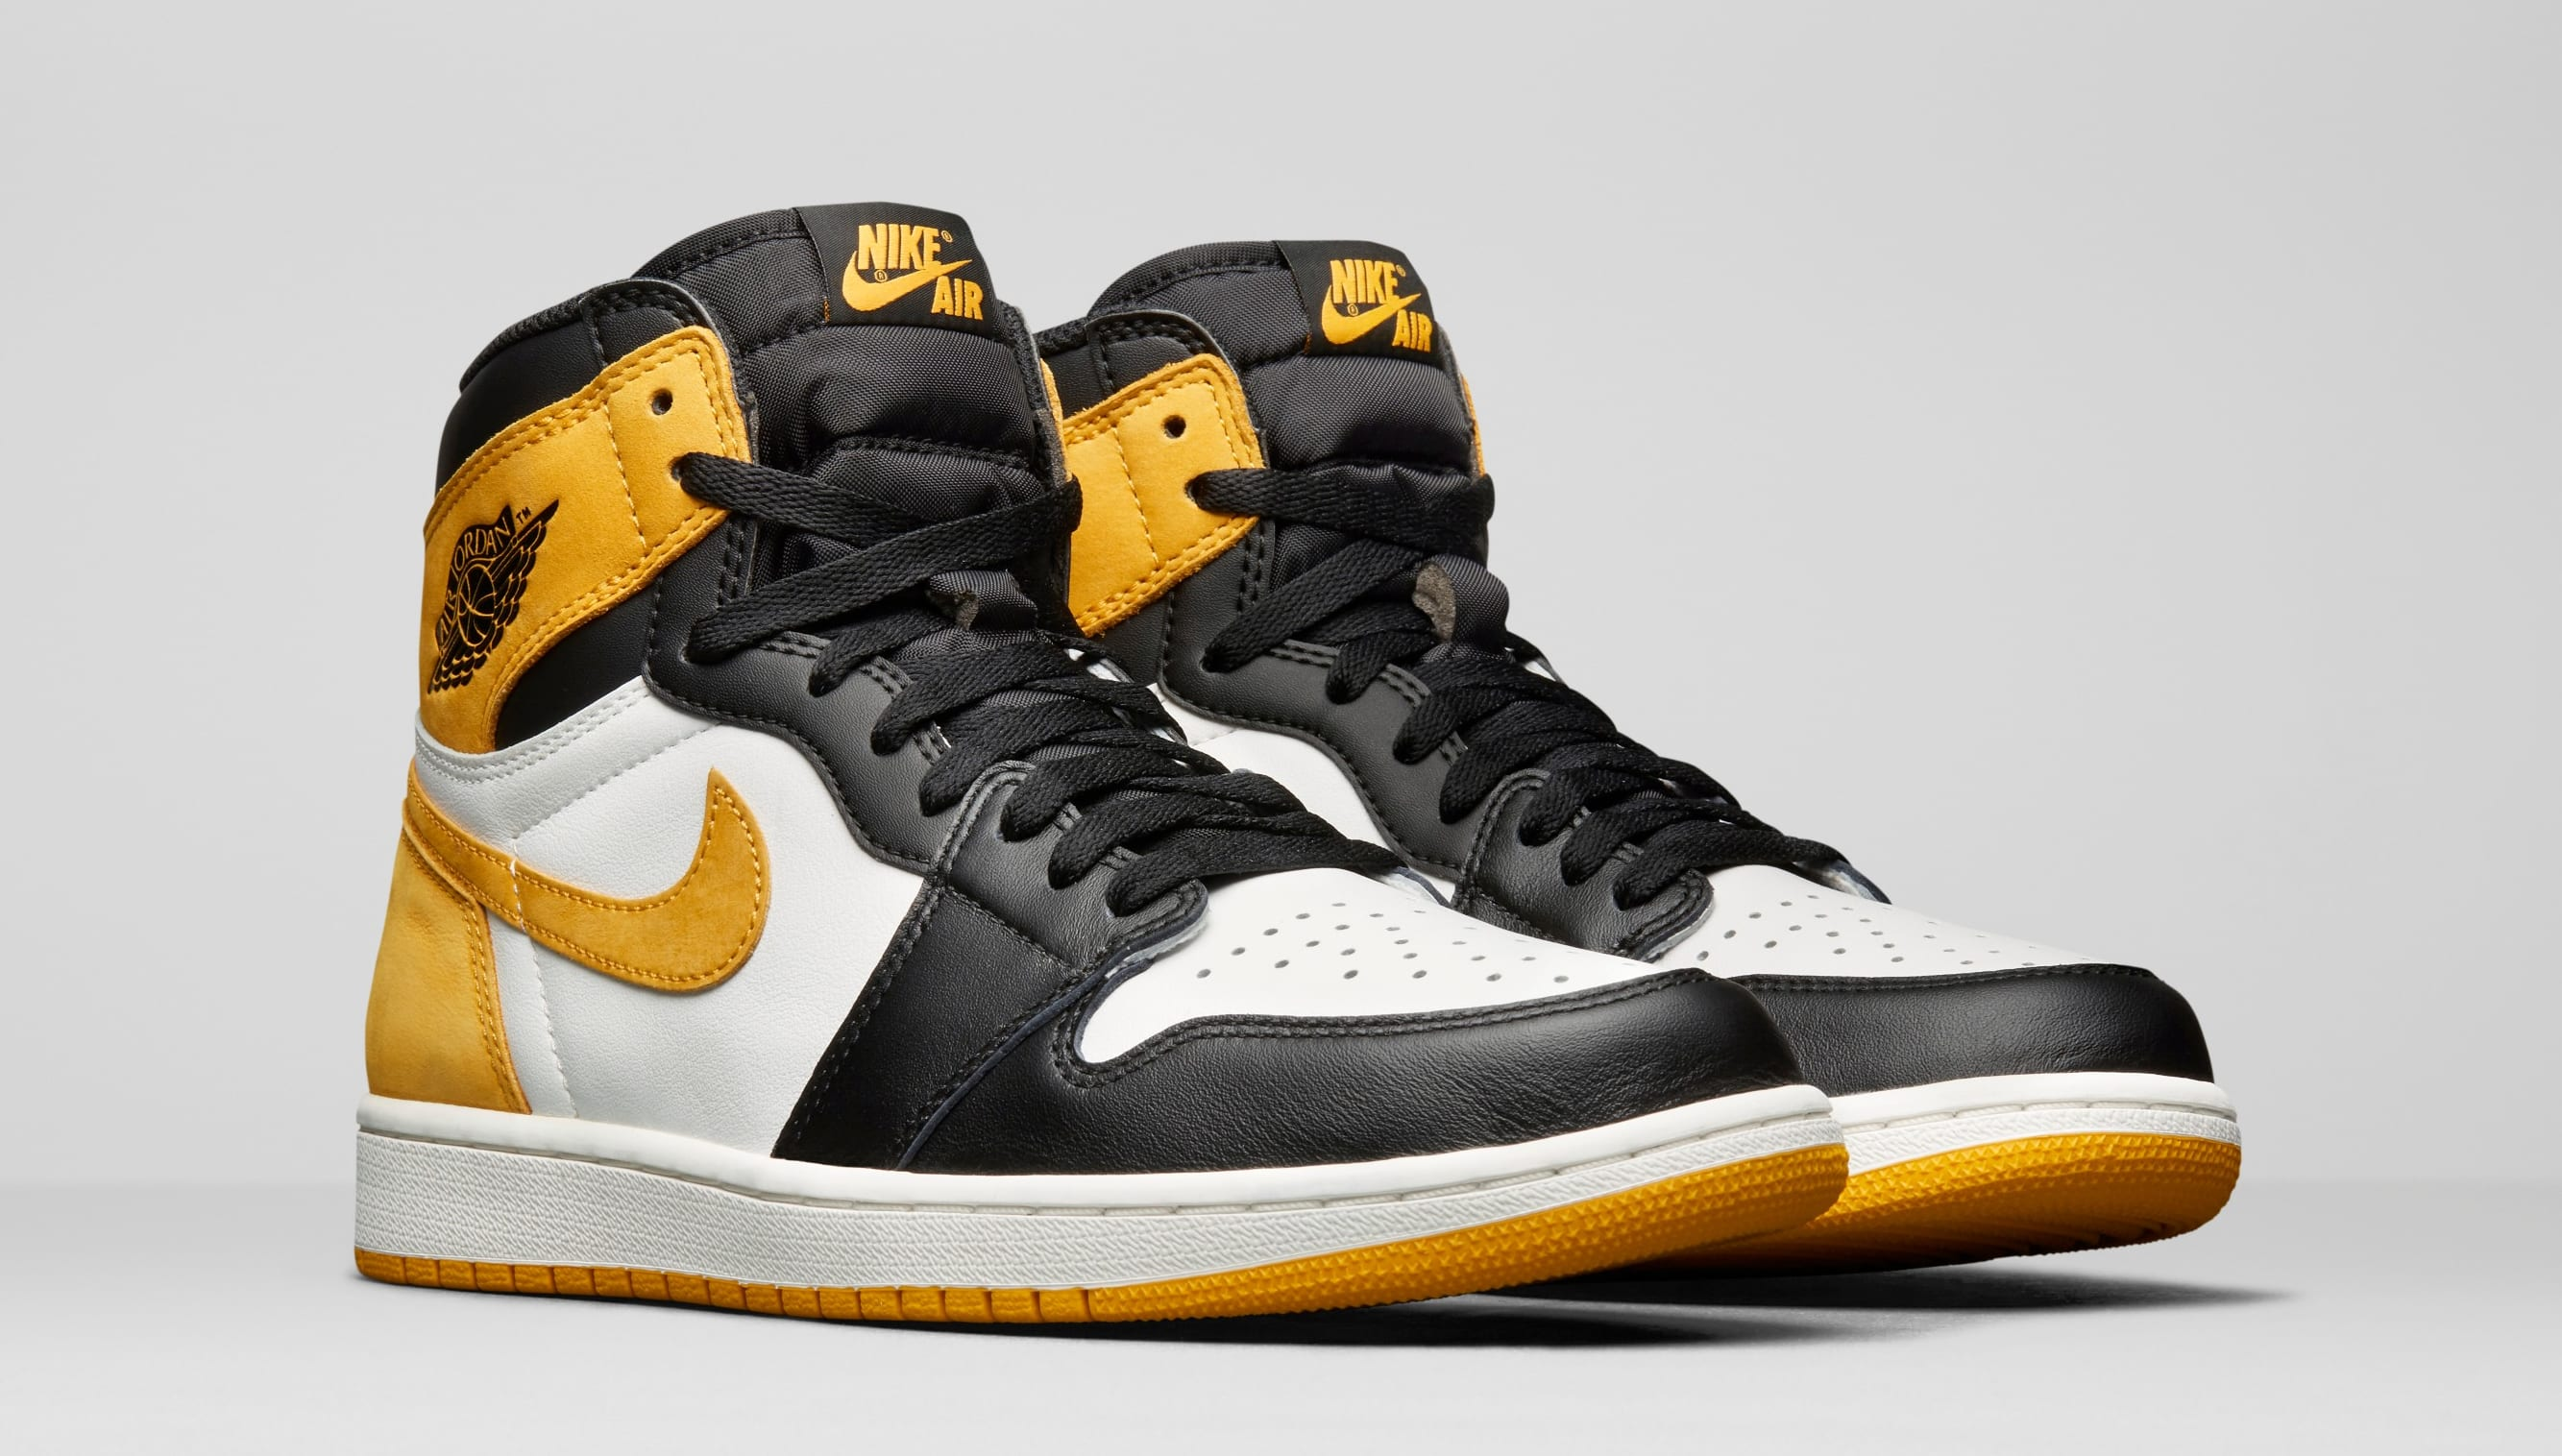 Air Jordan 1 High OG 'Best Hand in the Game' Collection